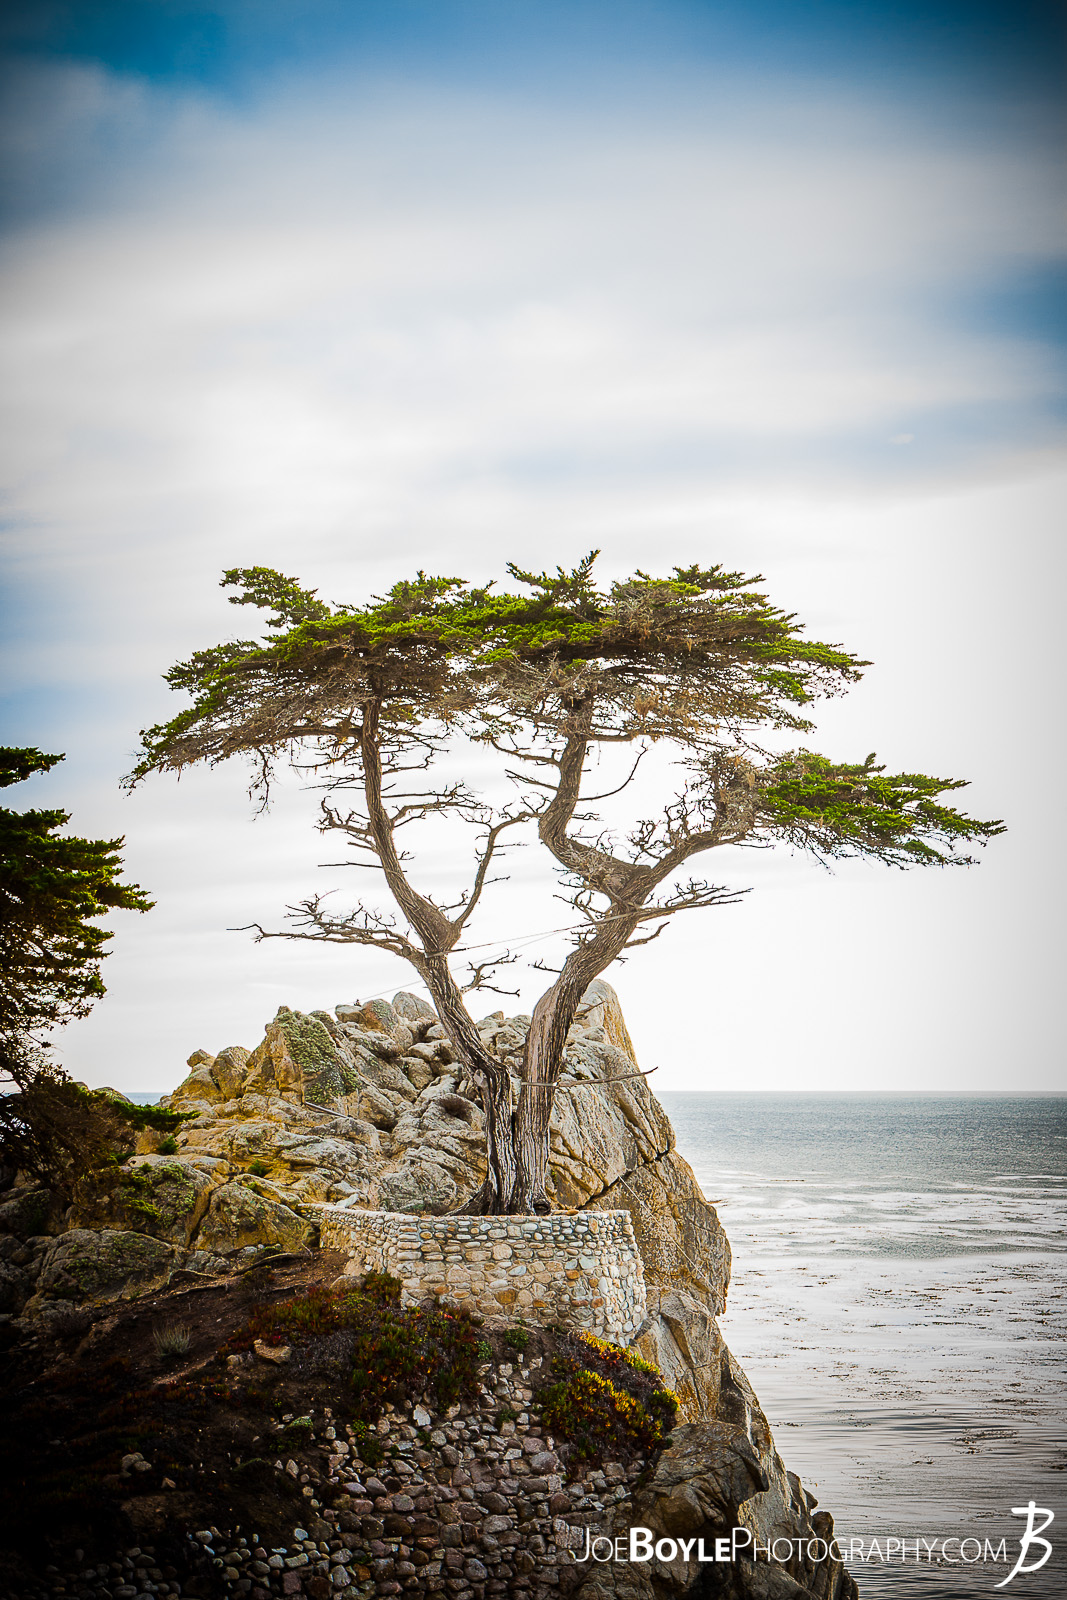 When I was traveling to California I made it a point travel along the gorgeous 17 Mile Drive near Carmel by the Sea. There were many attractions on the drive including otters, sea lions and of course the infamous Lonely Cypress Tree